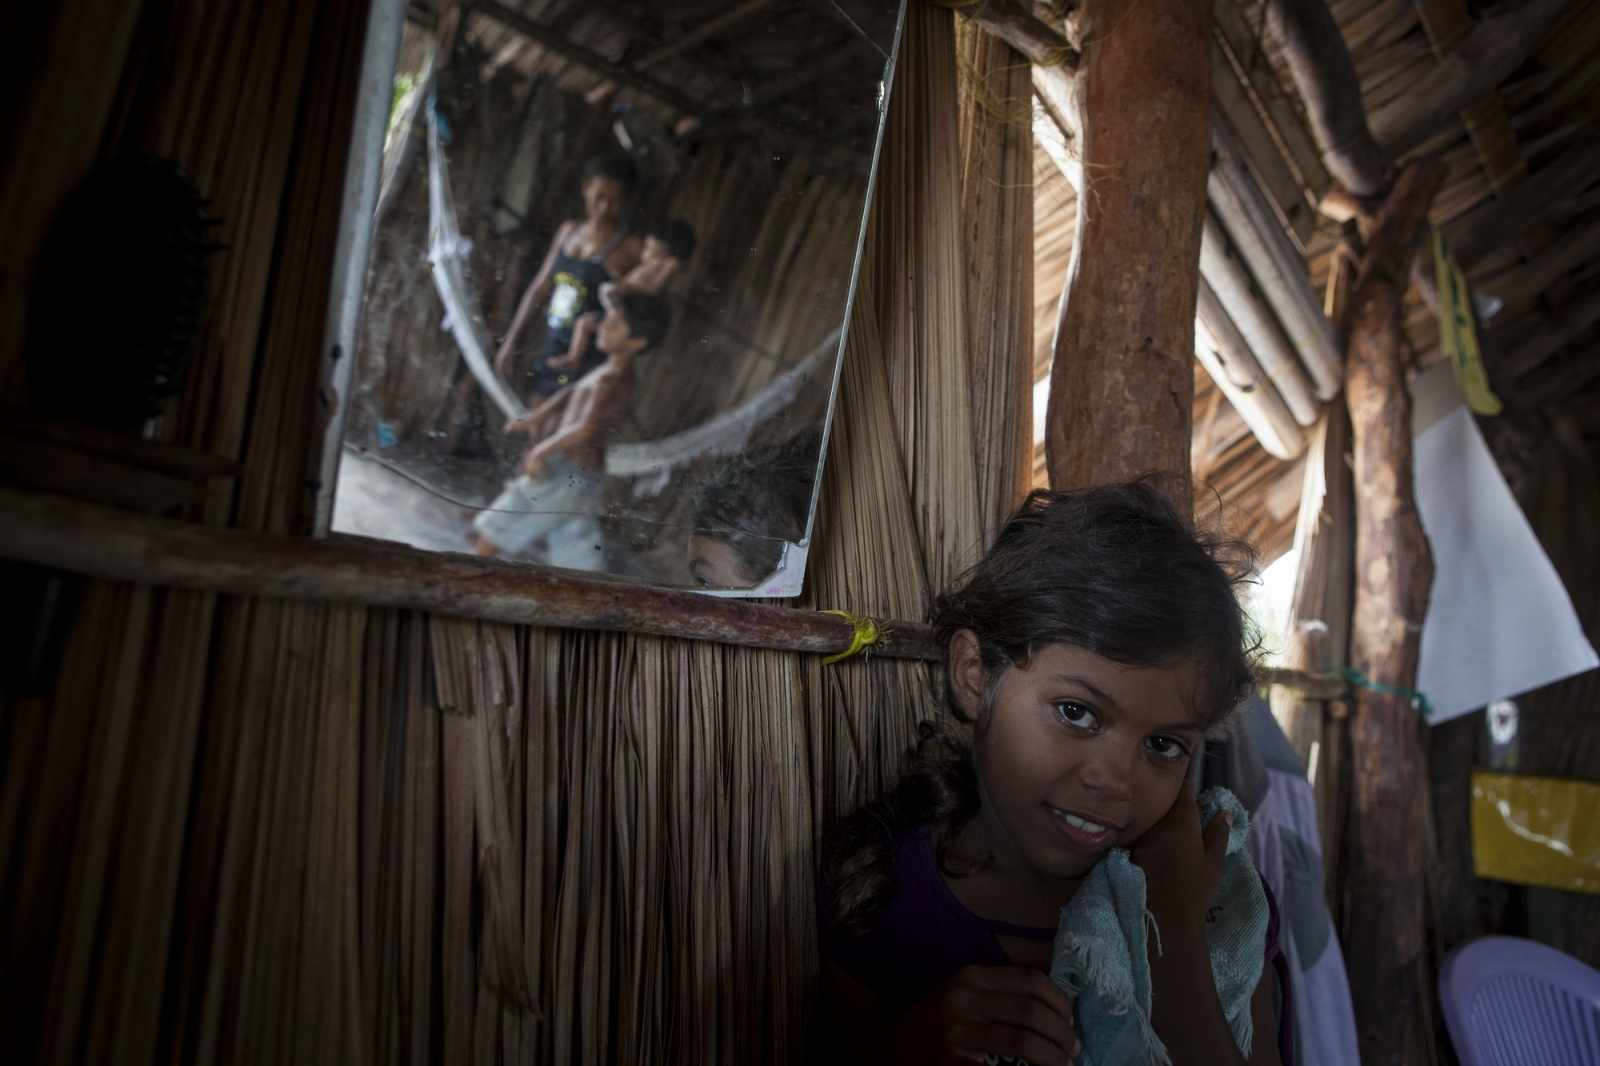 Rosa Brito, 7, in her house with her family. During the afternoons the children are free to walk around the oasis and the dunes and adults tend to visit each other's houses and socialize.